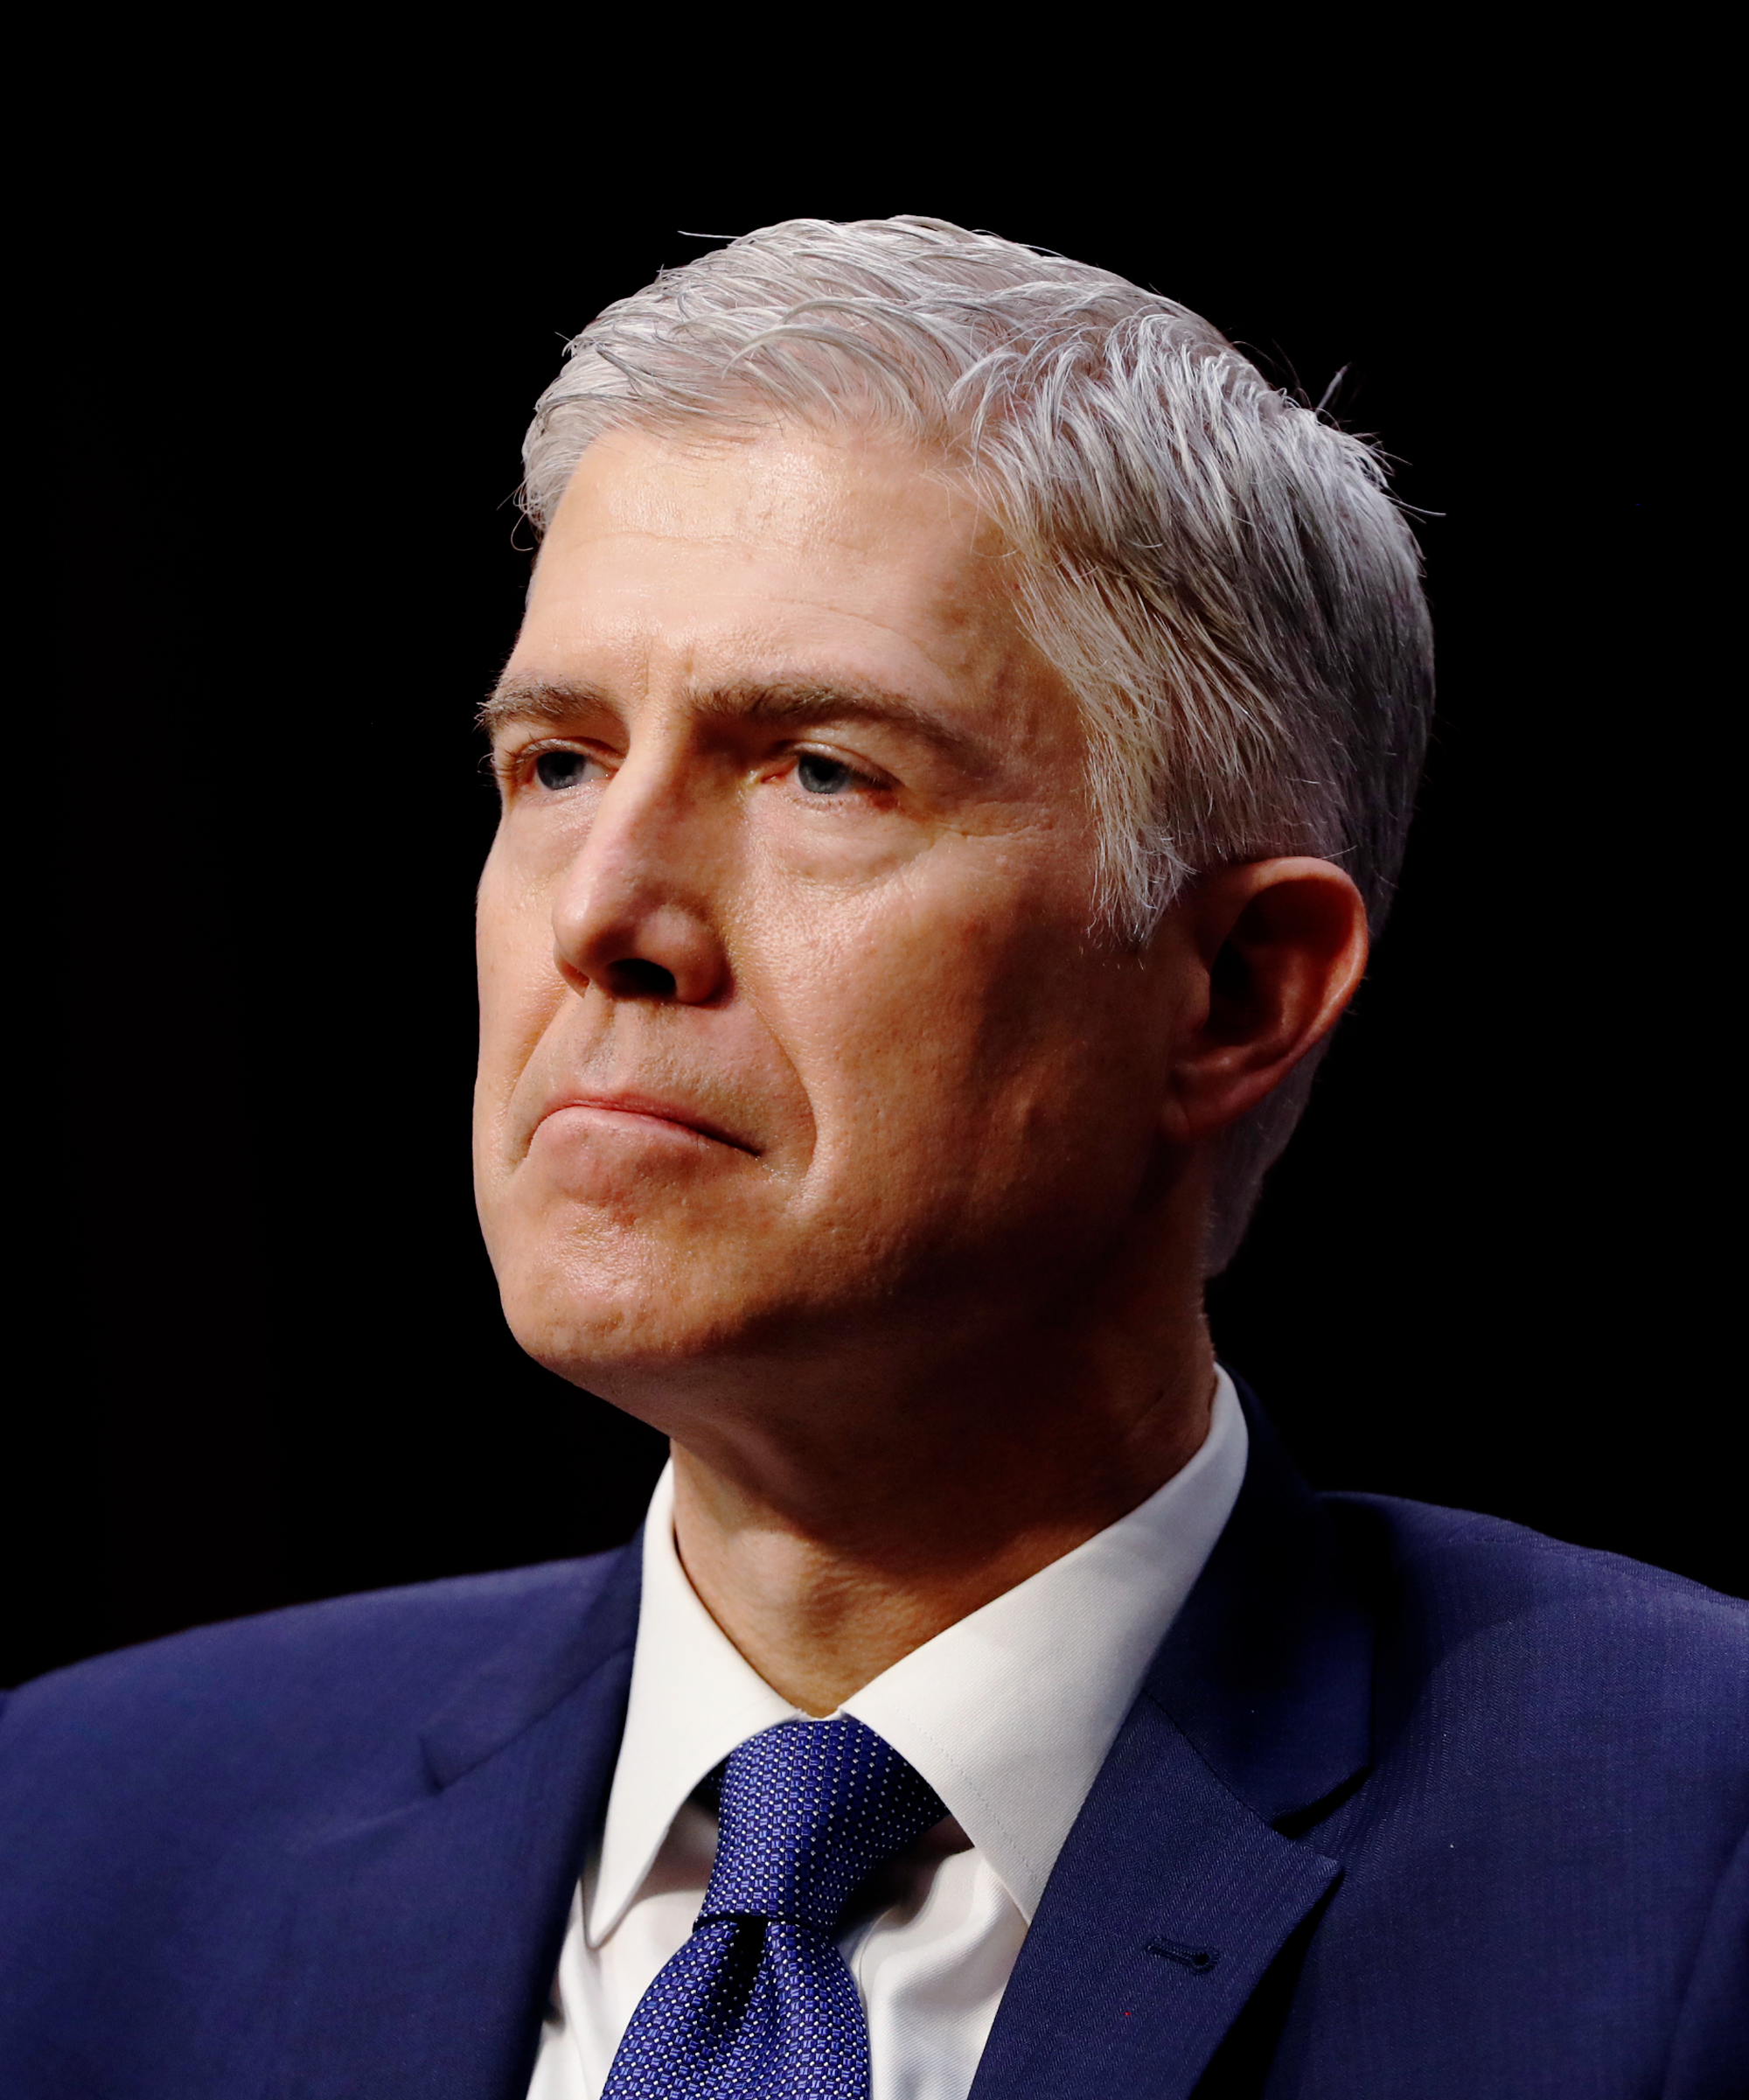 Senate Confirms Neil Gorsuch to Supreme Court, AR Lawmakers